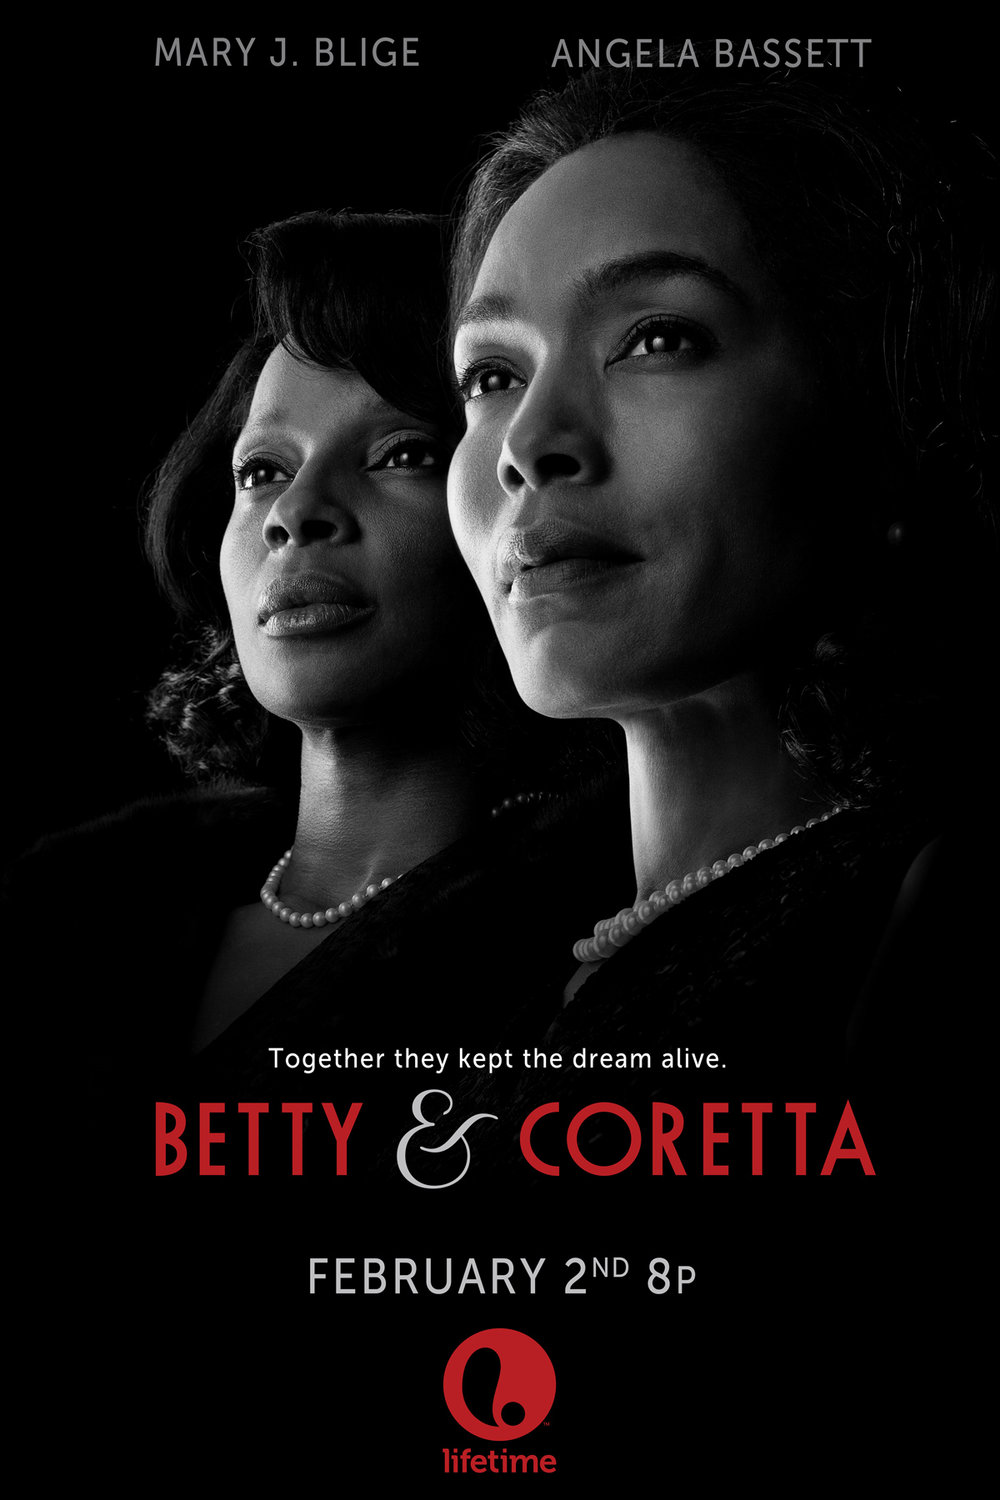 TV_Lifetime_Betty&Coretta.jpg